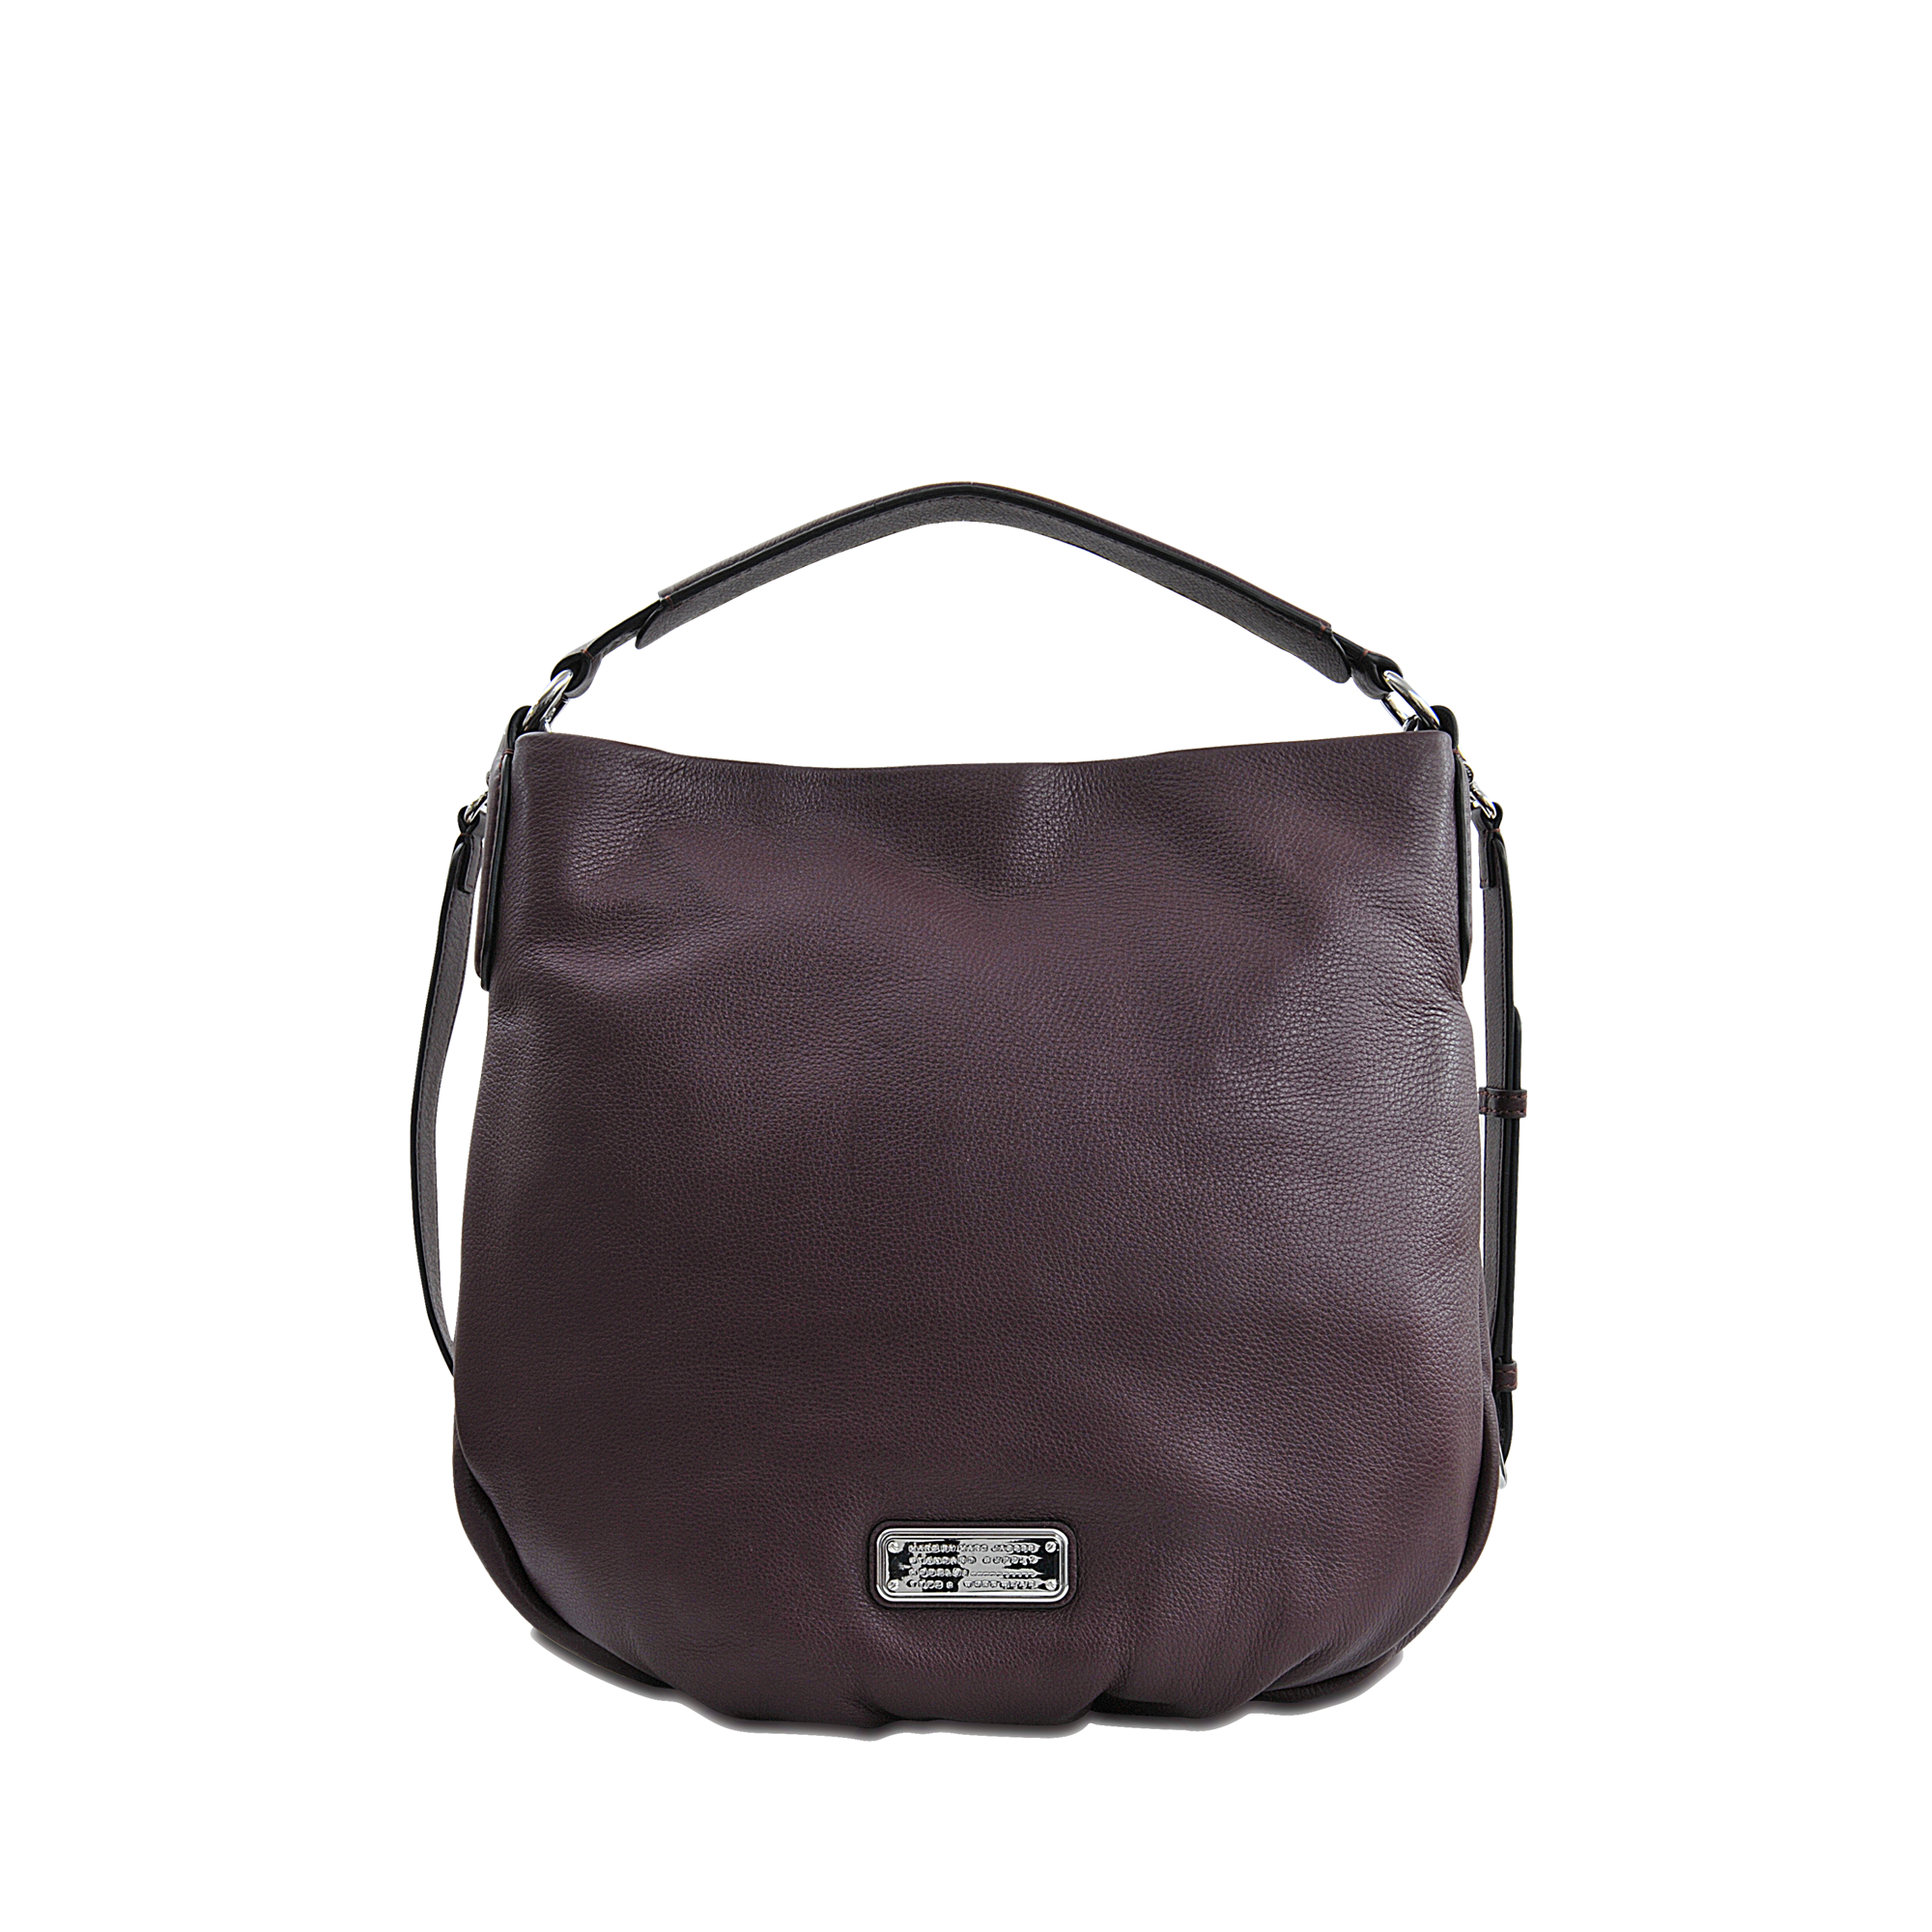 marc by marc jacobs new q hillier hobo bag in purple lyst. Black Bedroom Furniture Sets. Home Design Ideas